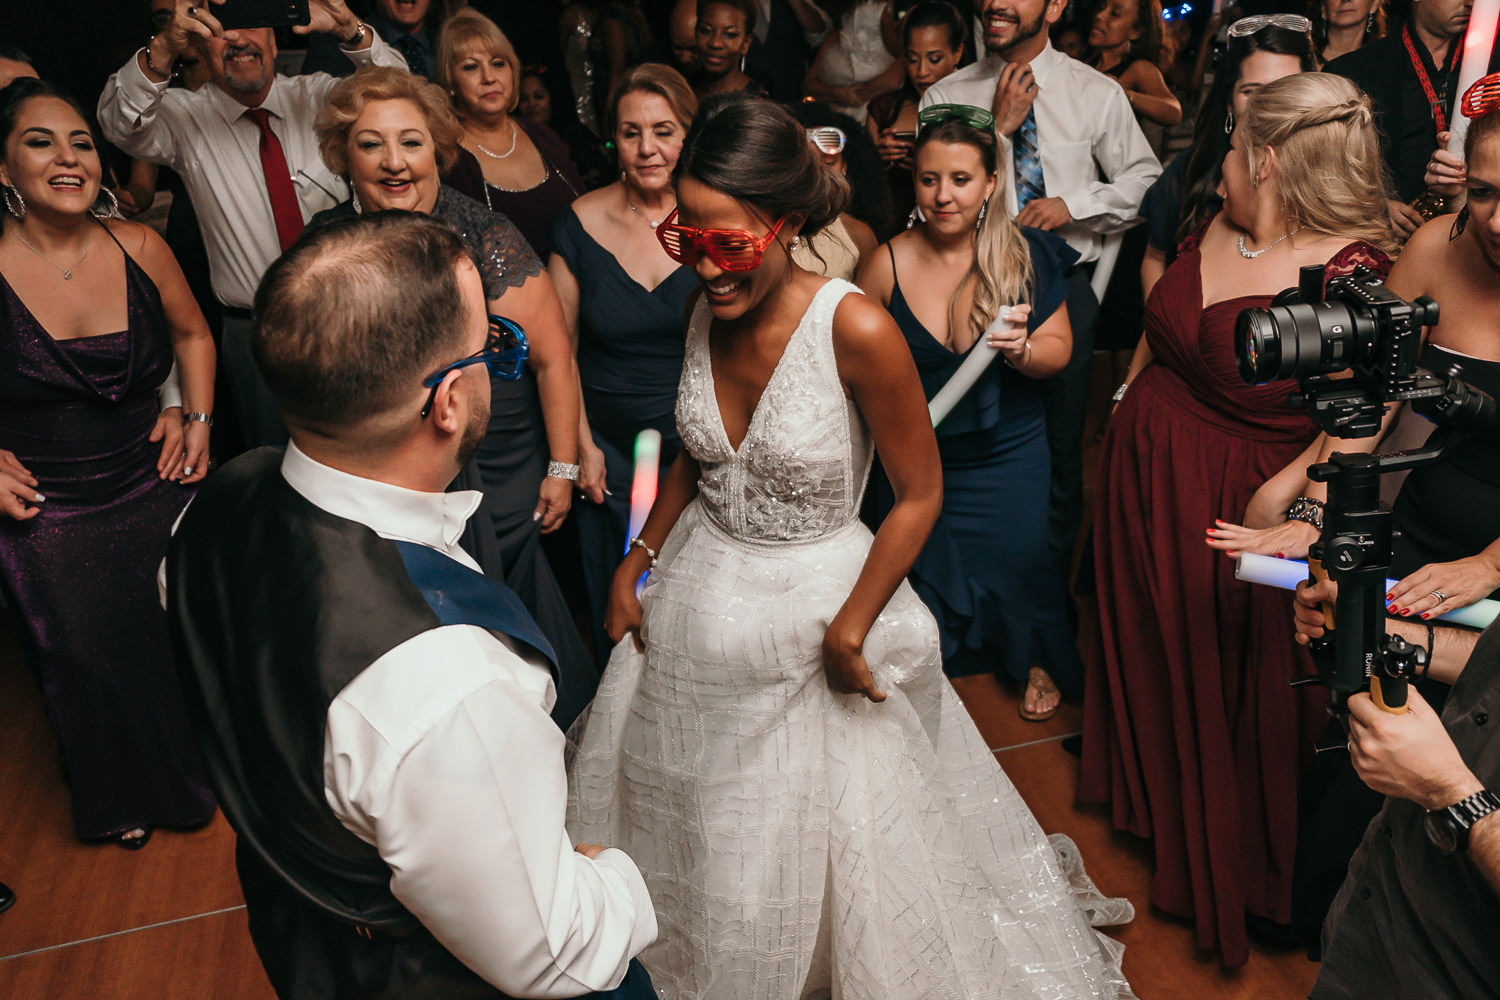 bride and groom dancing in middle of guests wearing big sunglasses